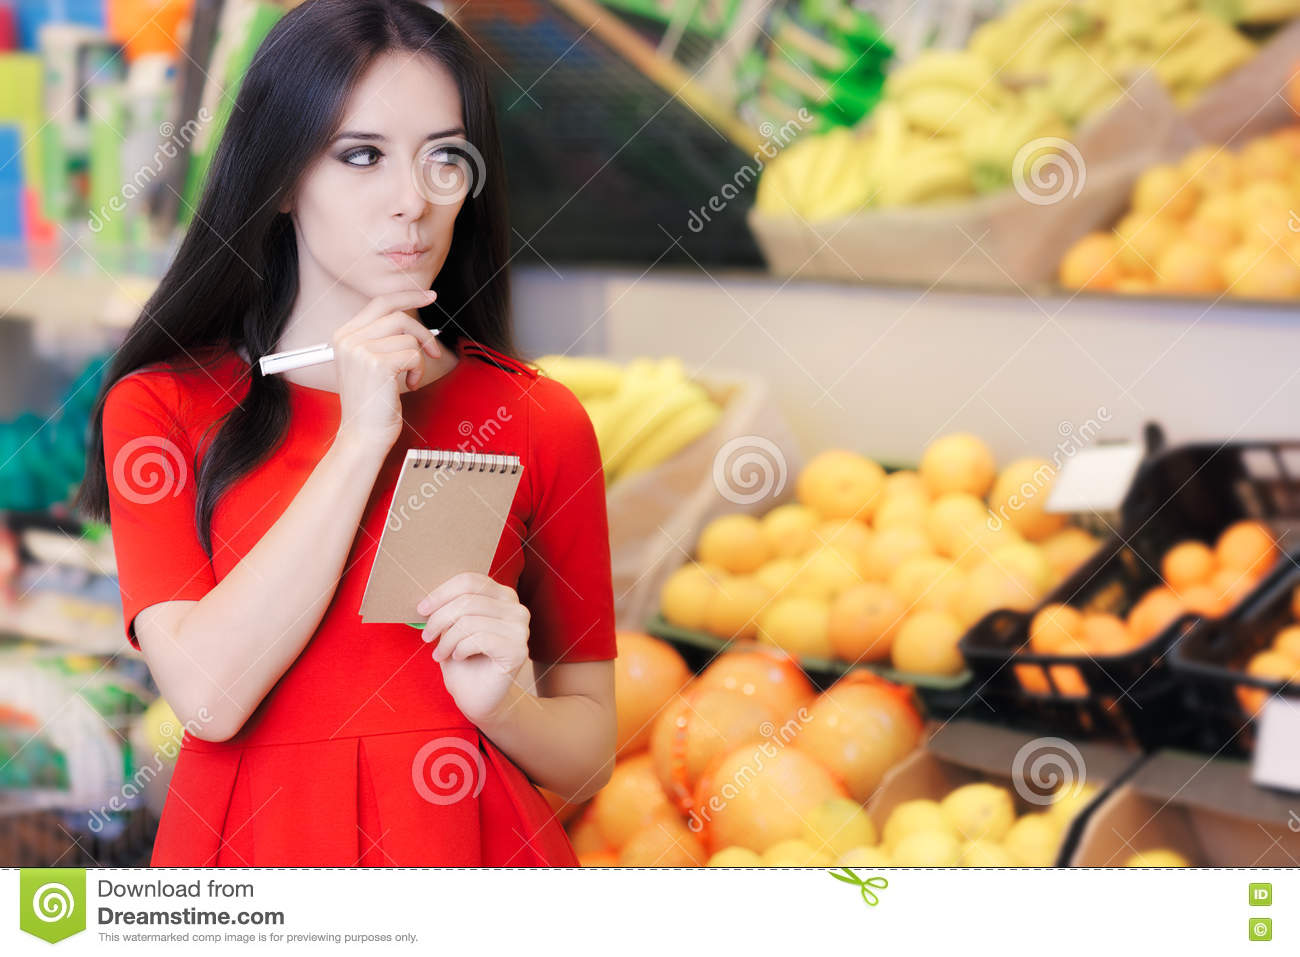 Curious Woman in The Supermarket with Hopping List